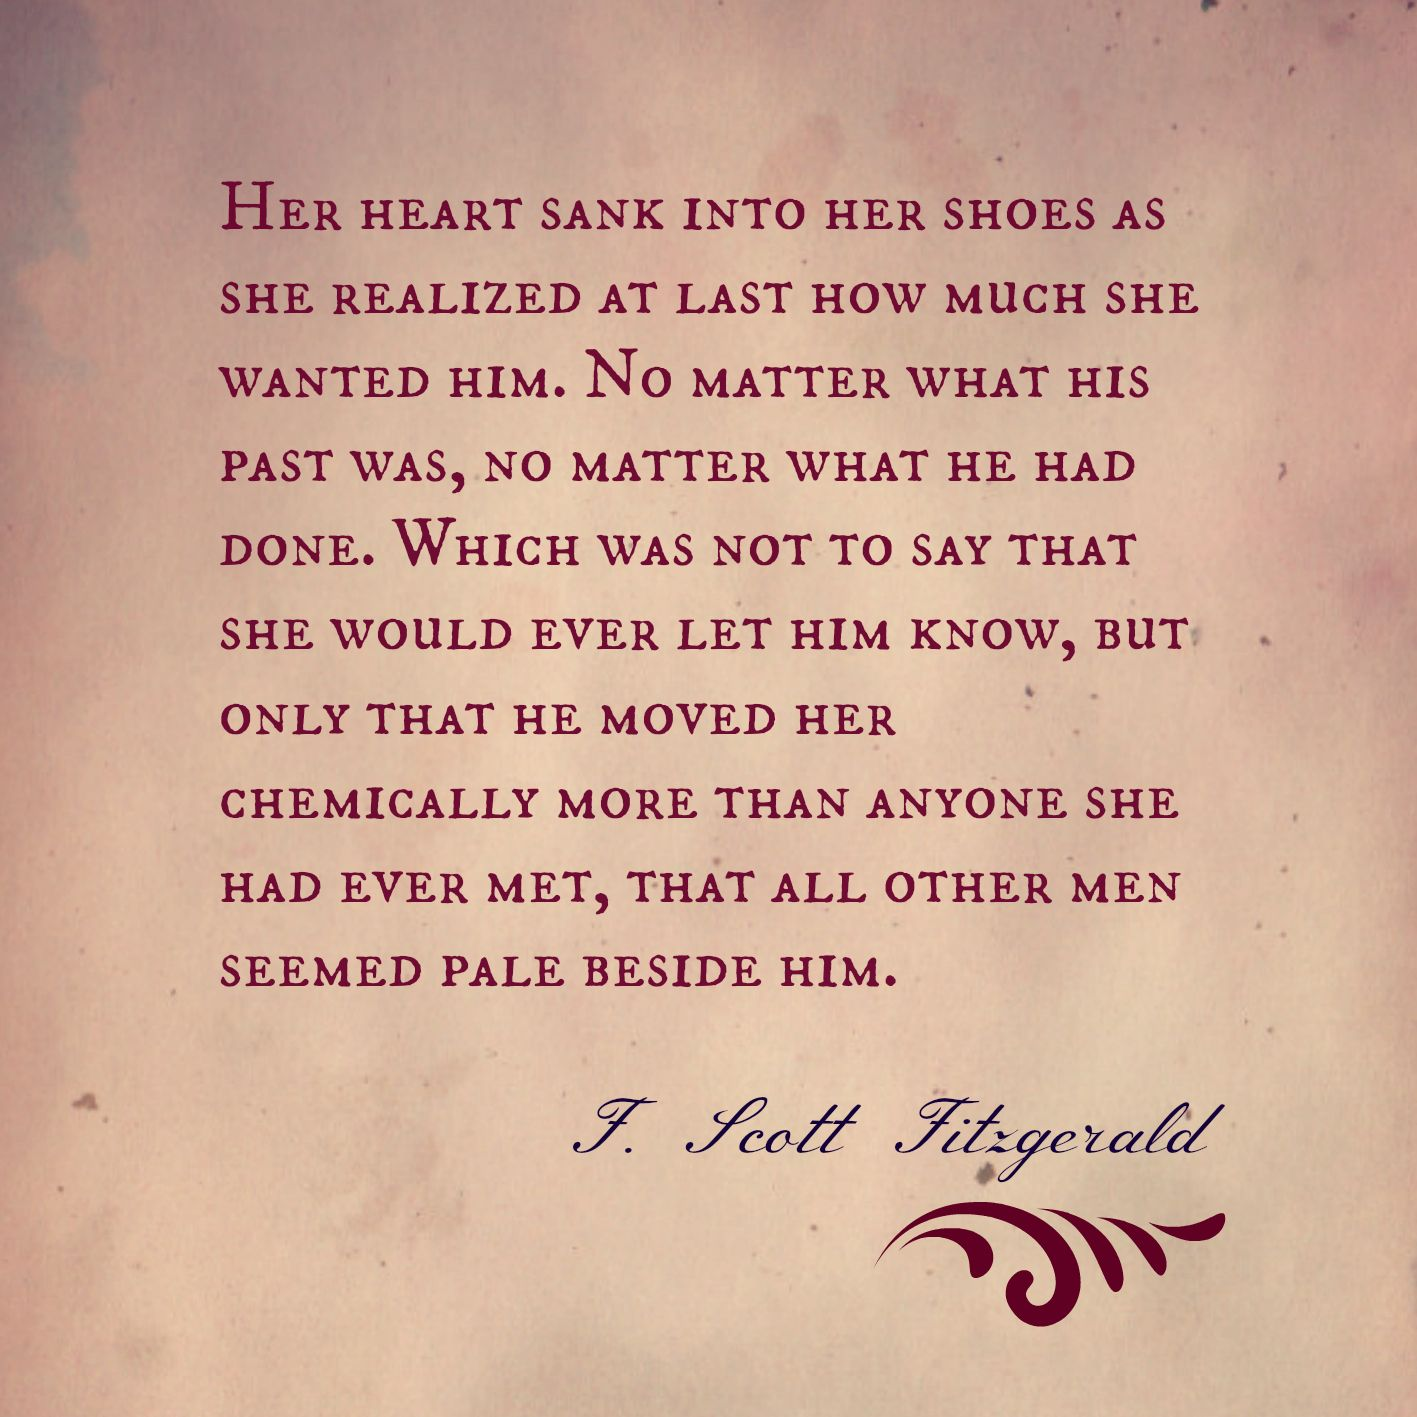 Love Quotes F Scott Fitzgerald Fscott Fitzgerald  Quotables  Pinterest  Scott Fitzgerald